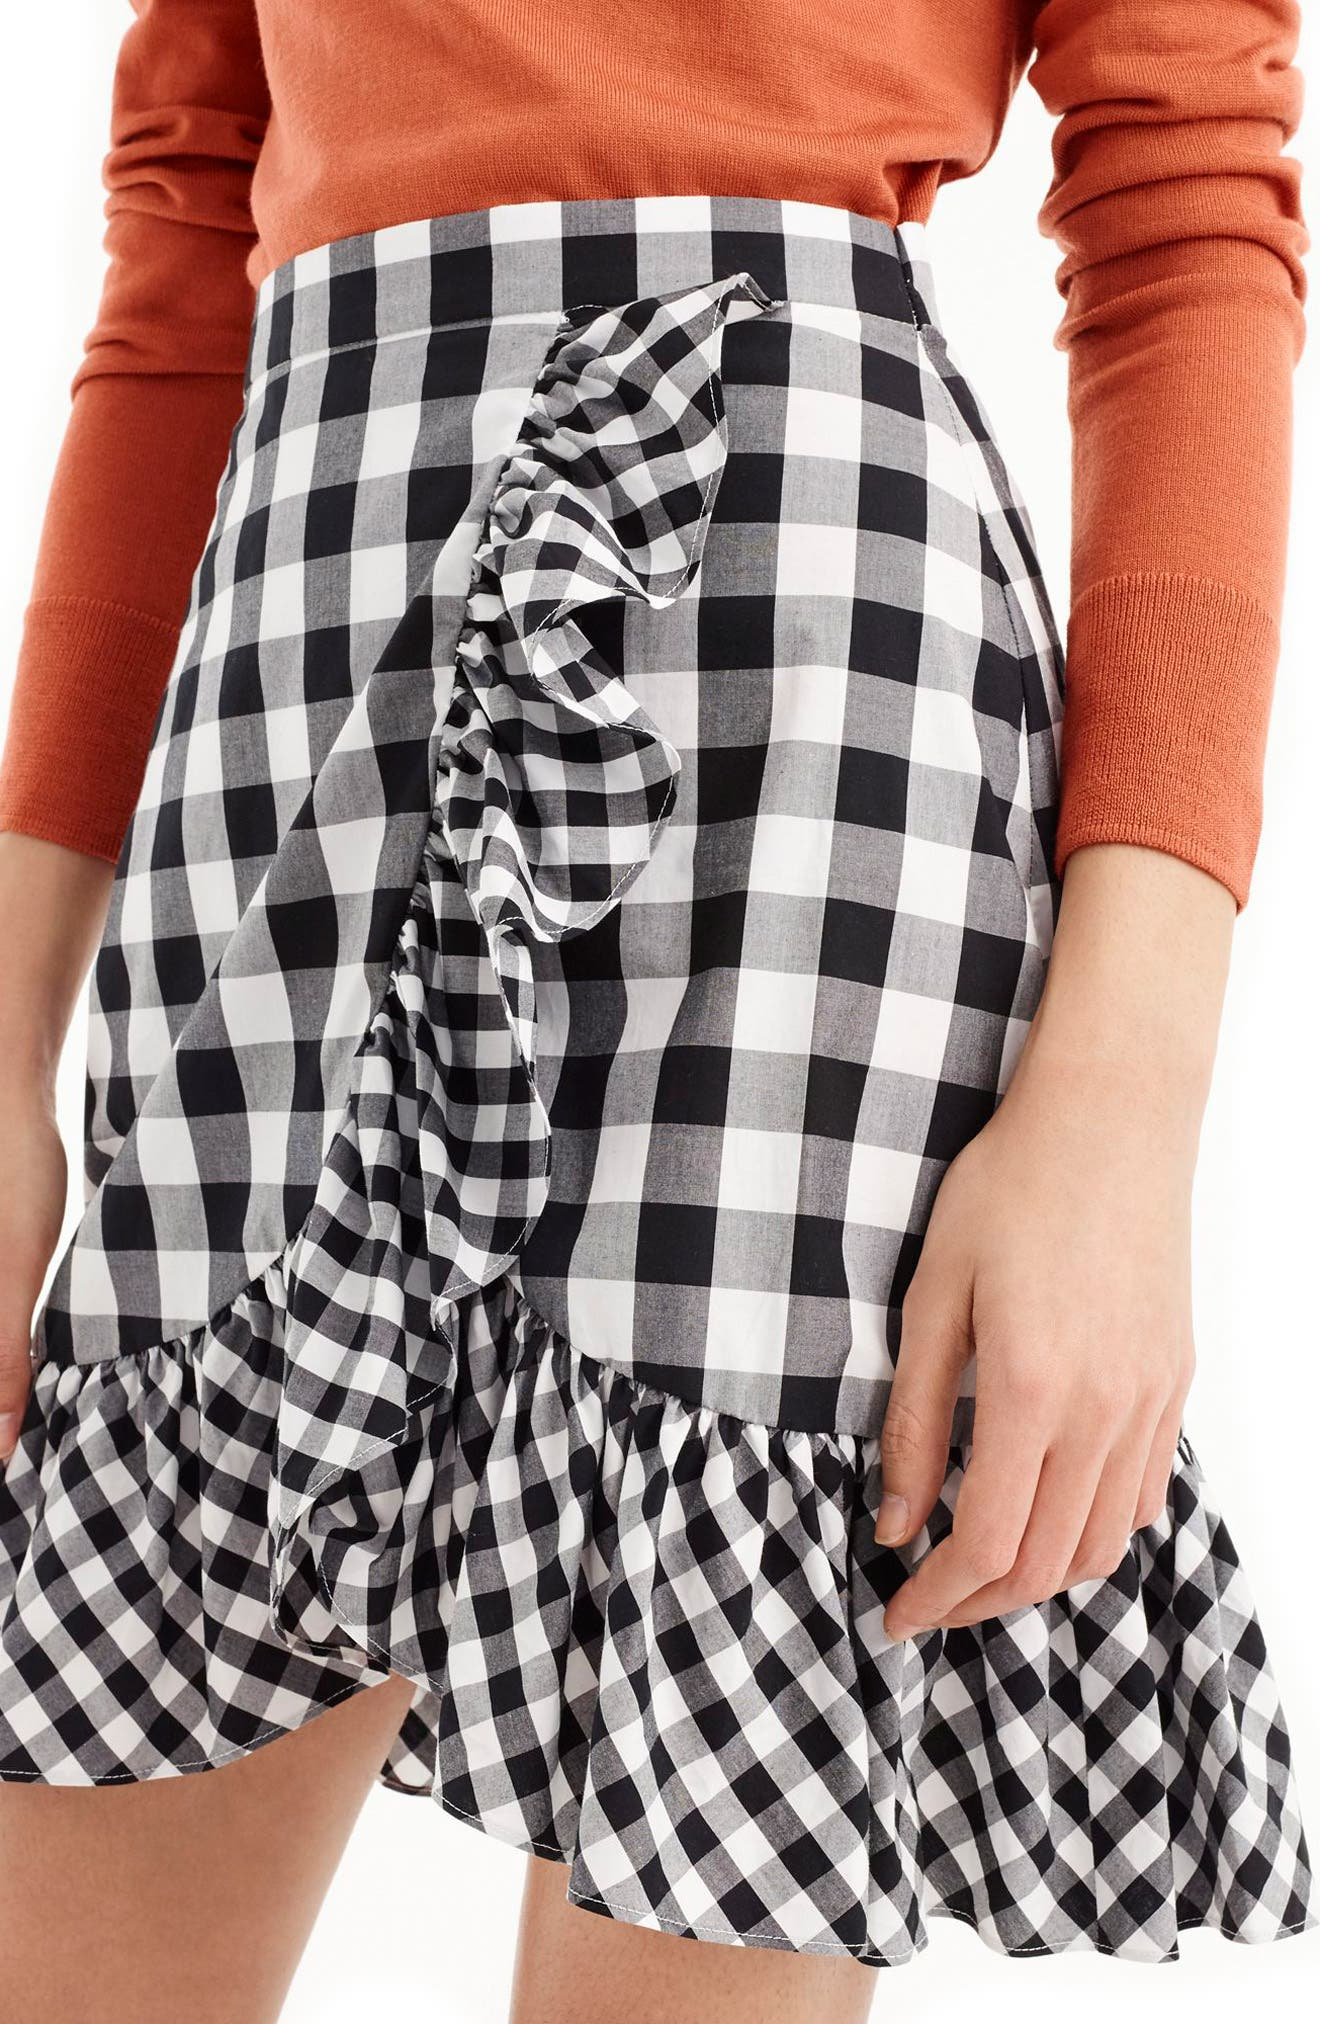 Pistachio Gingham Cotton Poplin Ruffle Skirt,                             Alternate thumbnail 3, color,                             010